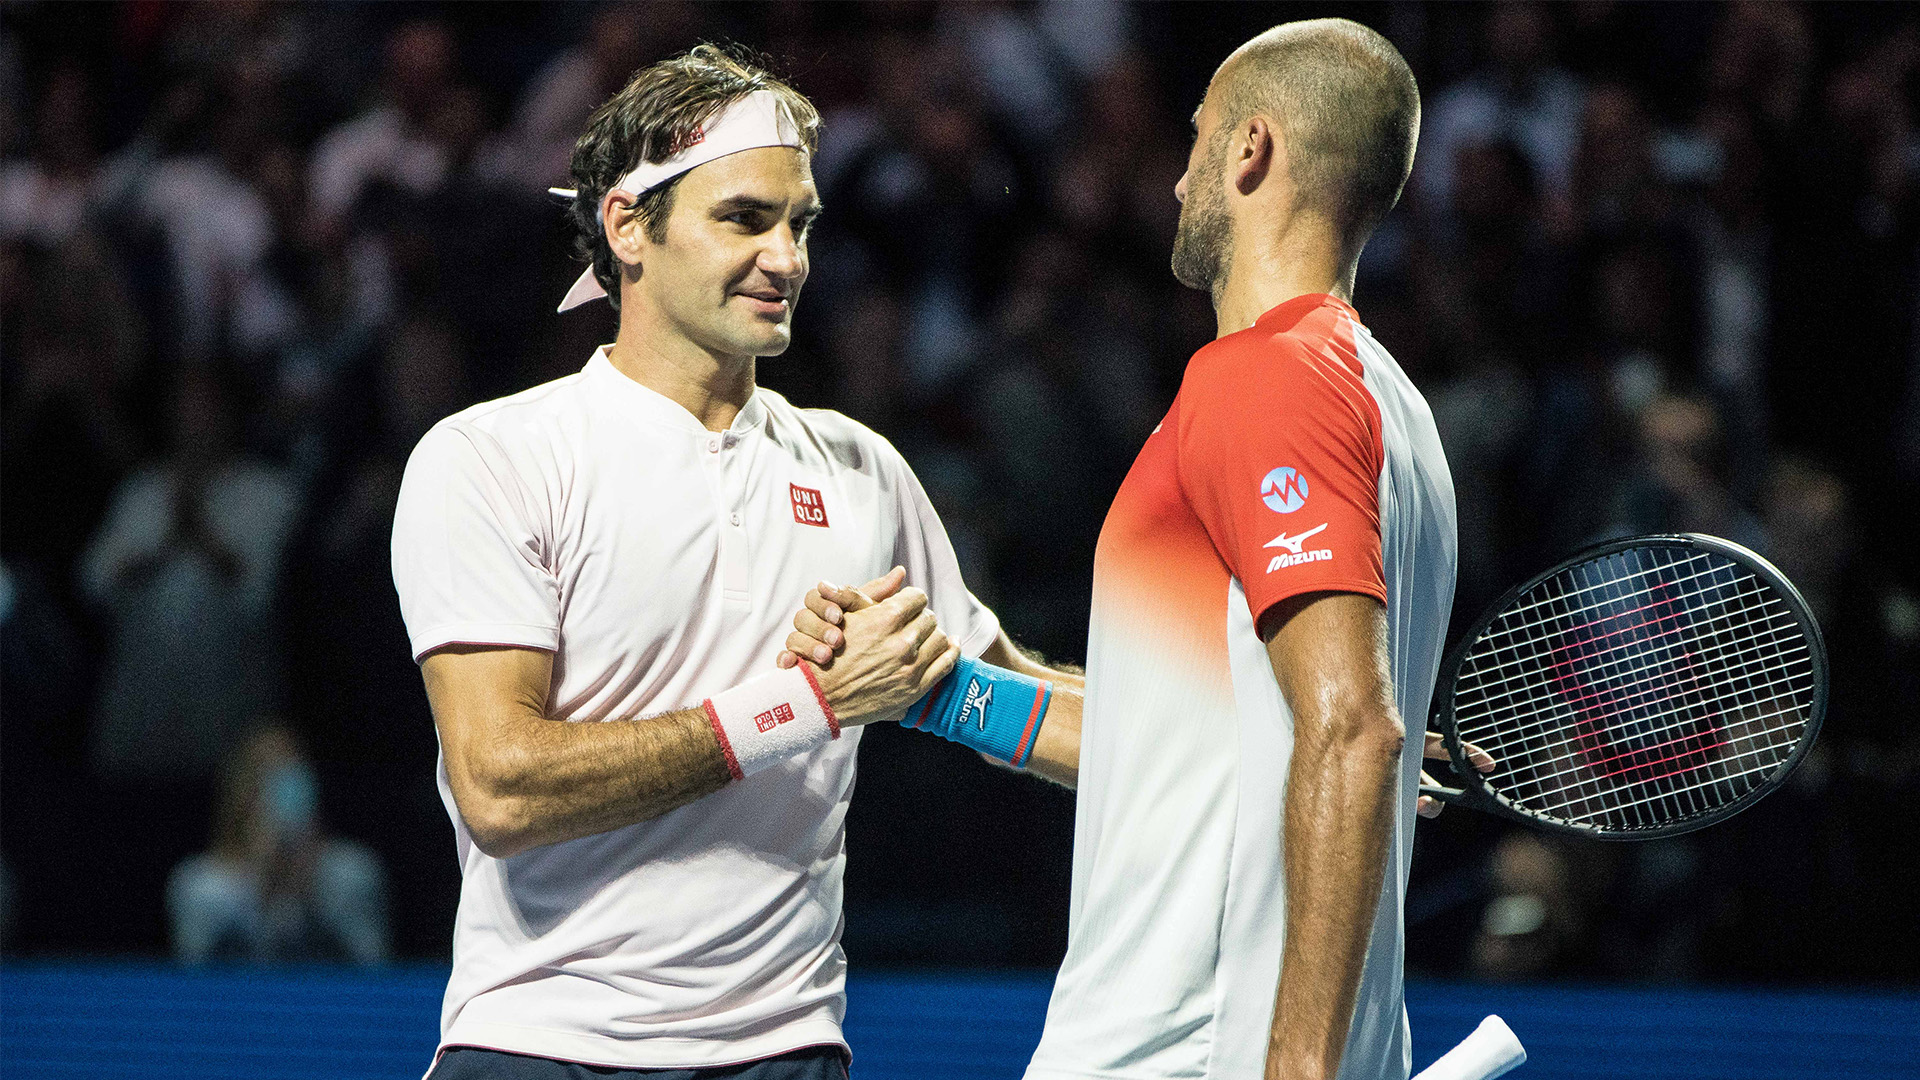 Marius Copil gets defeated by Roger Federer